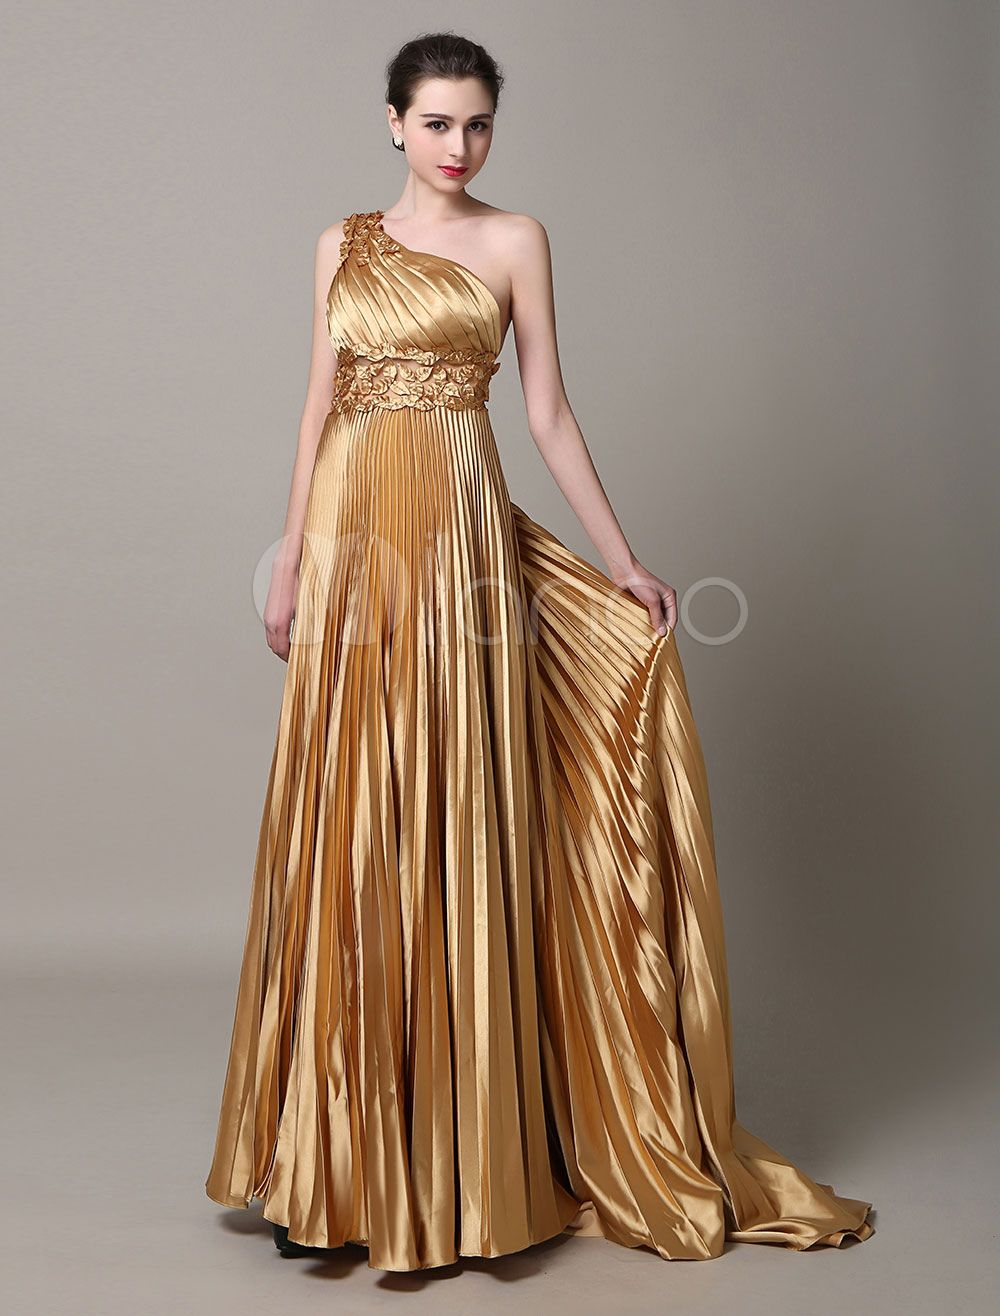 74291c1215f27 Gold evening dresses One Shoulder formal gowns pleated Sash Satin ...